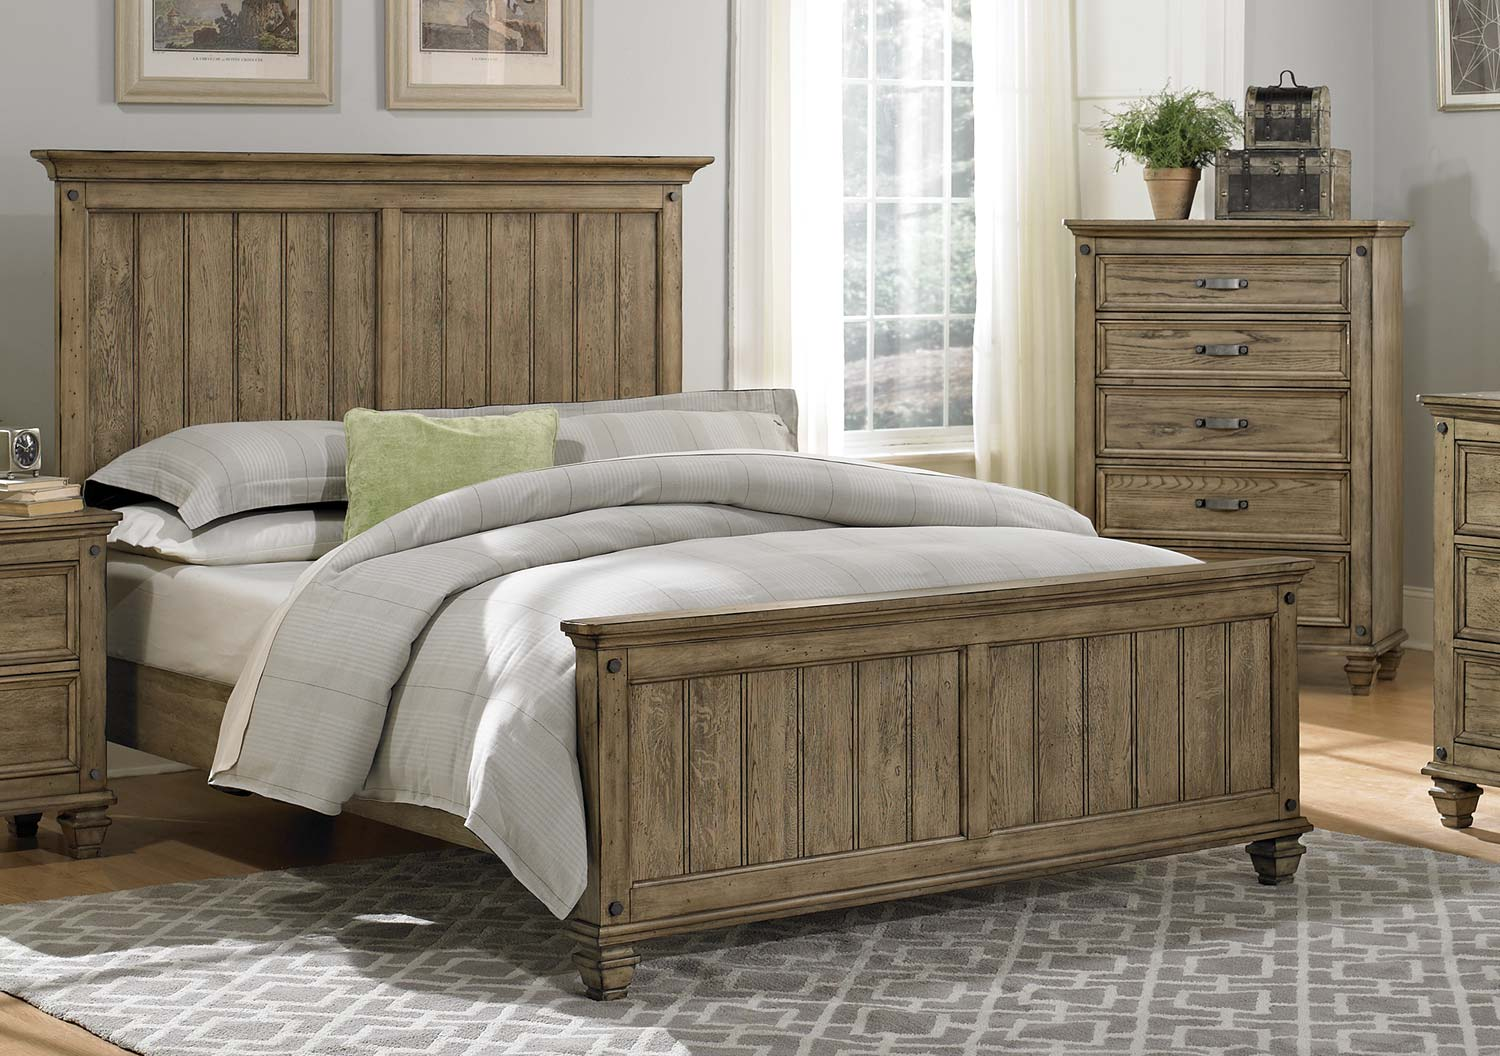 Homelegance sylvania bedroom set driftwood oak 2298 bed for Bedroom ideas oak bed